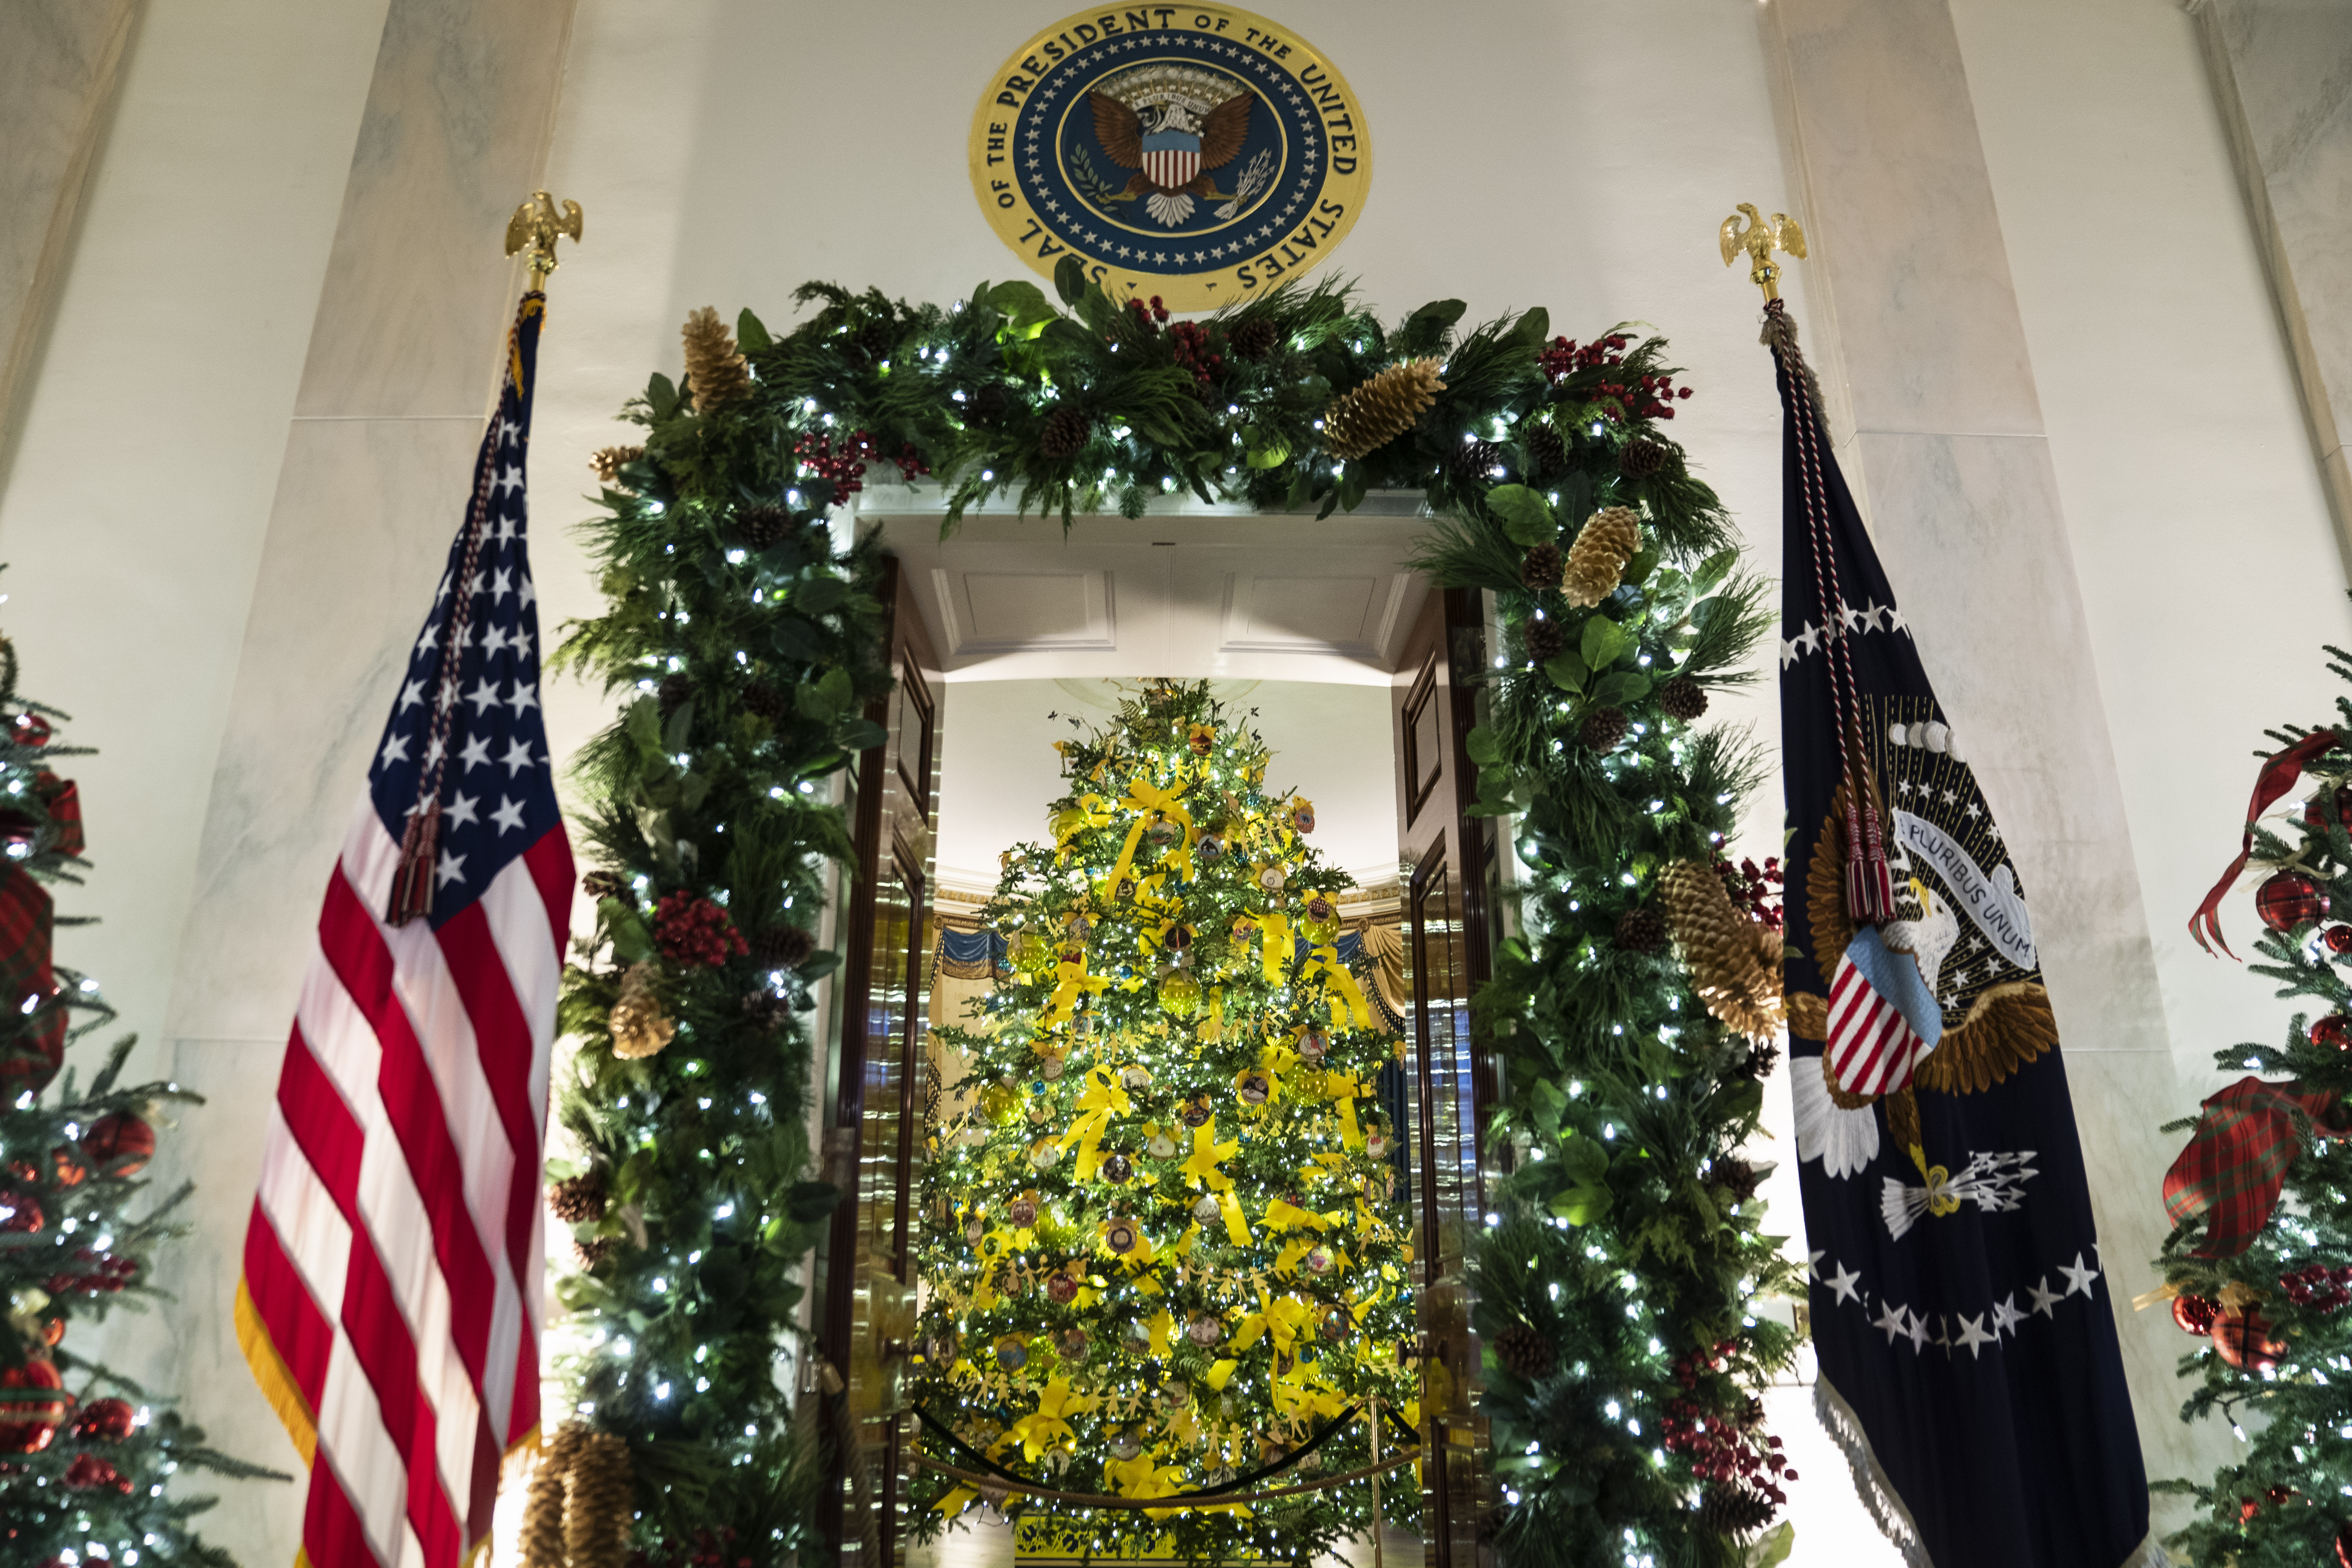 Federal Employee Christmas Eve Off 2021 Most Federal Employees To Get The Day Off Dec 24 Under Trump Executive Order The Washington Post